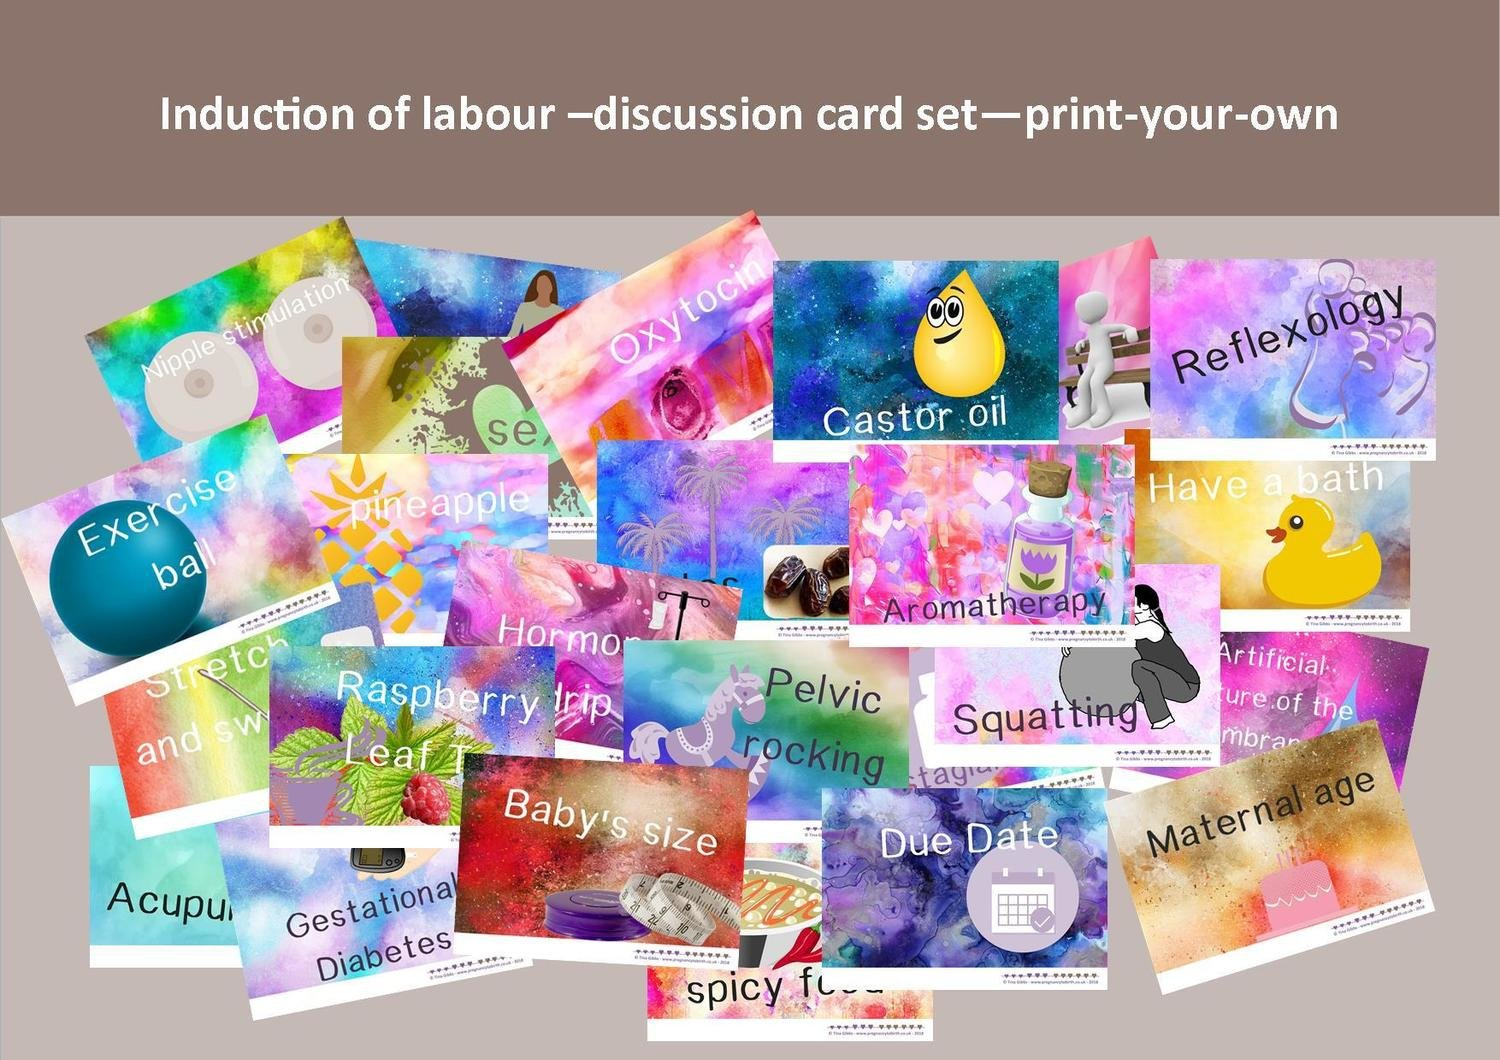 Induction of labour - Print-your-own pdf card set